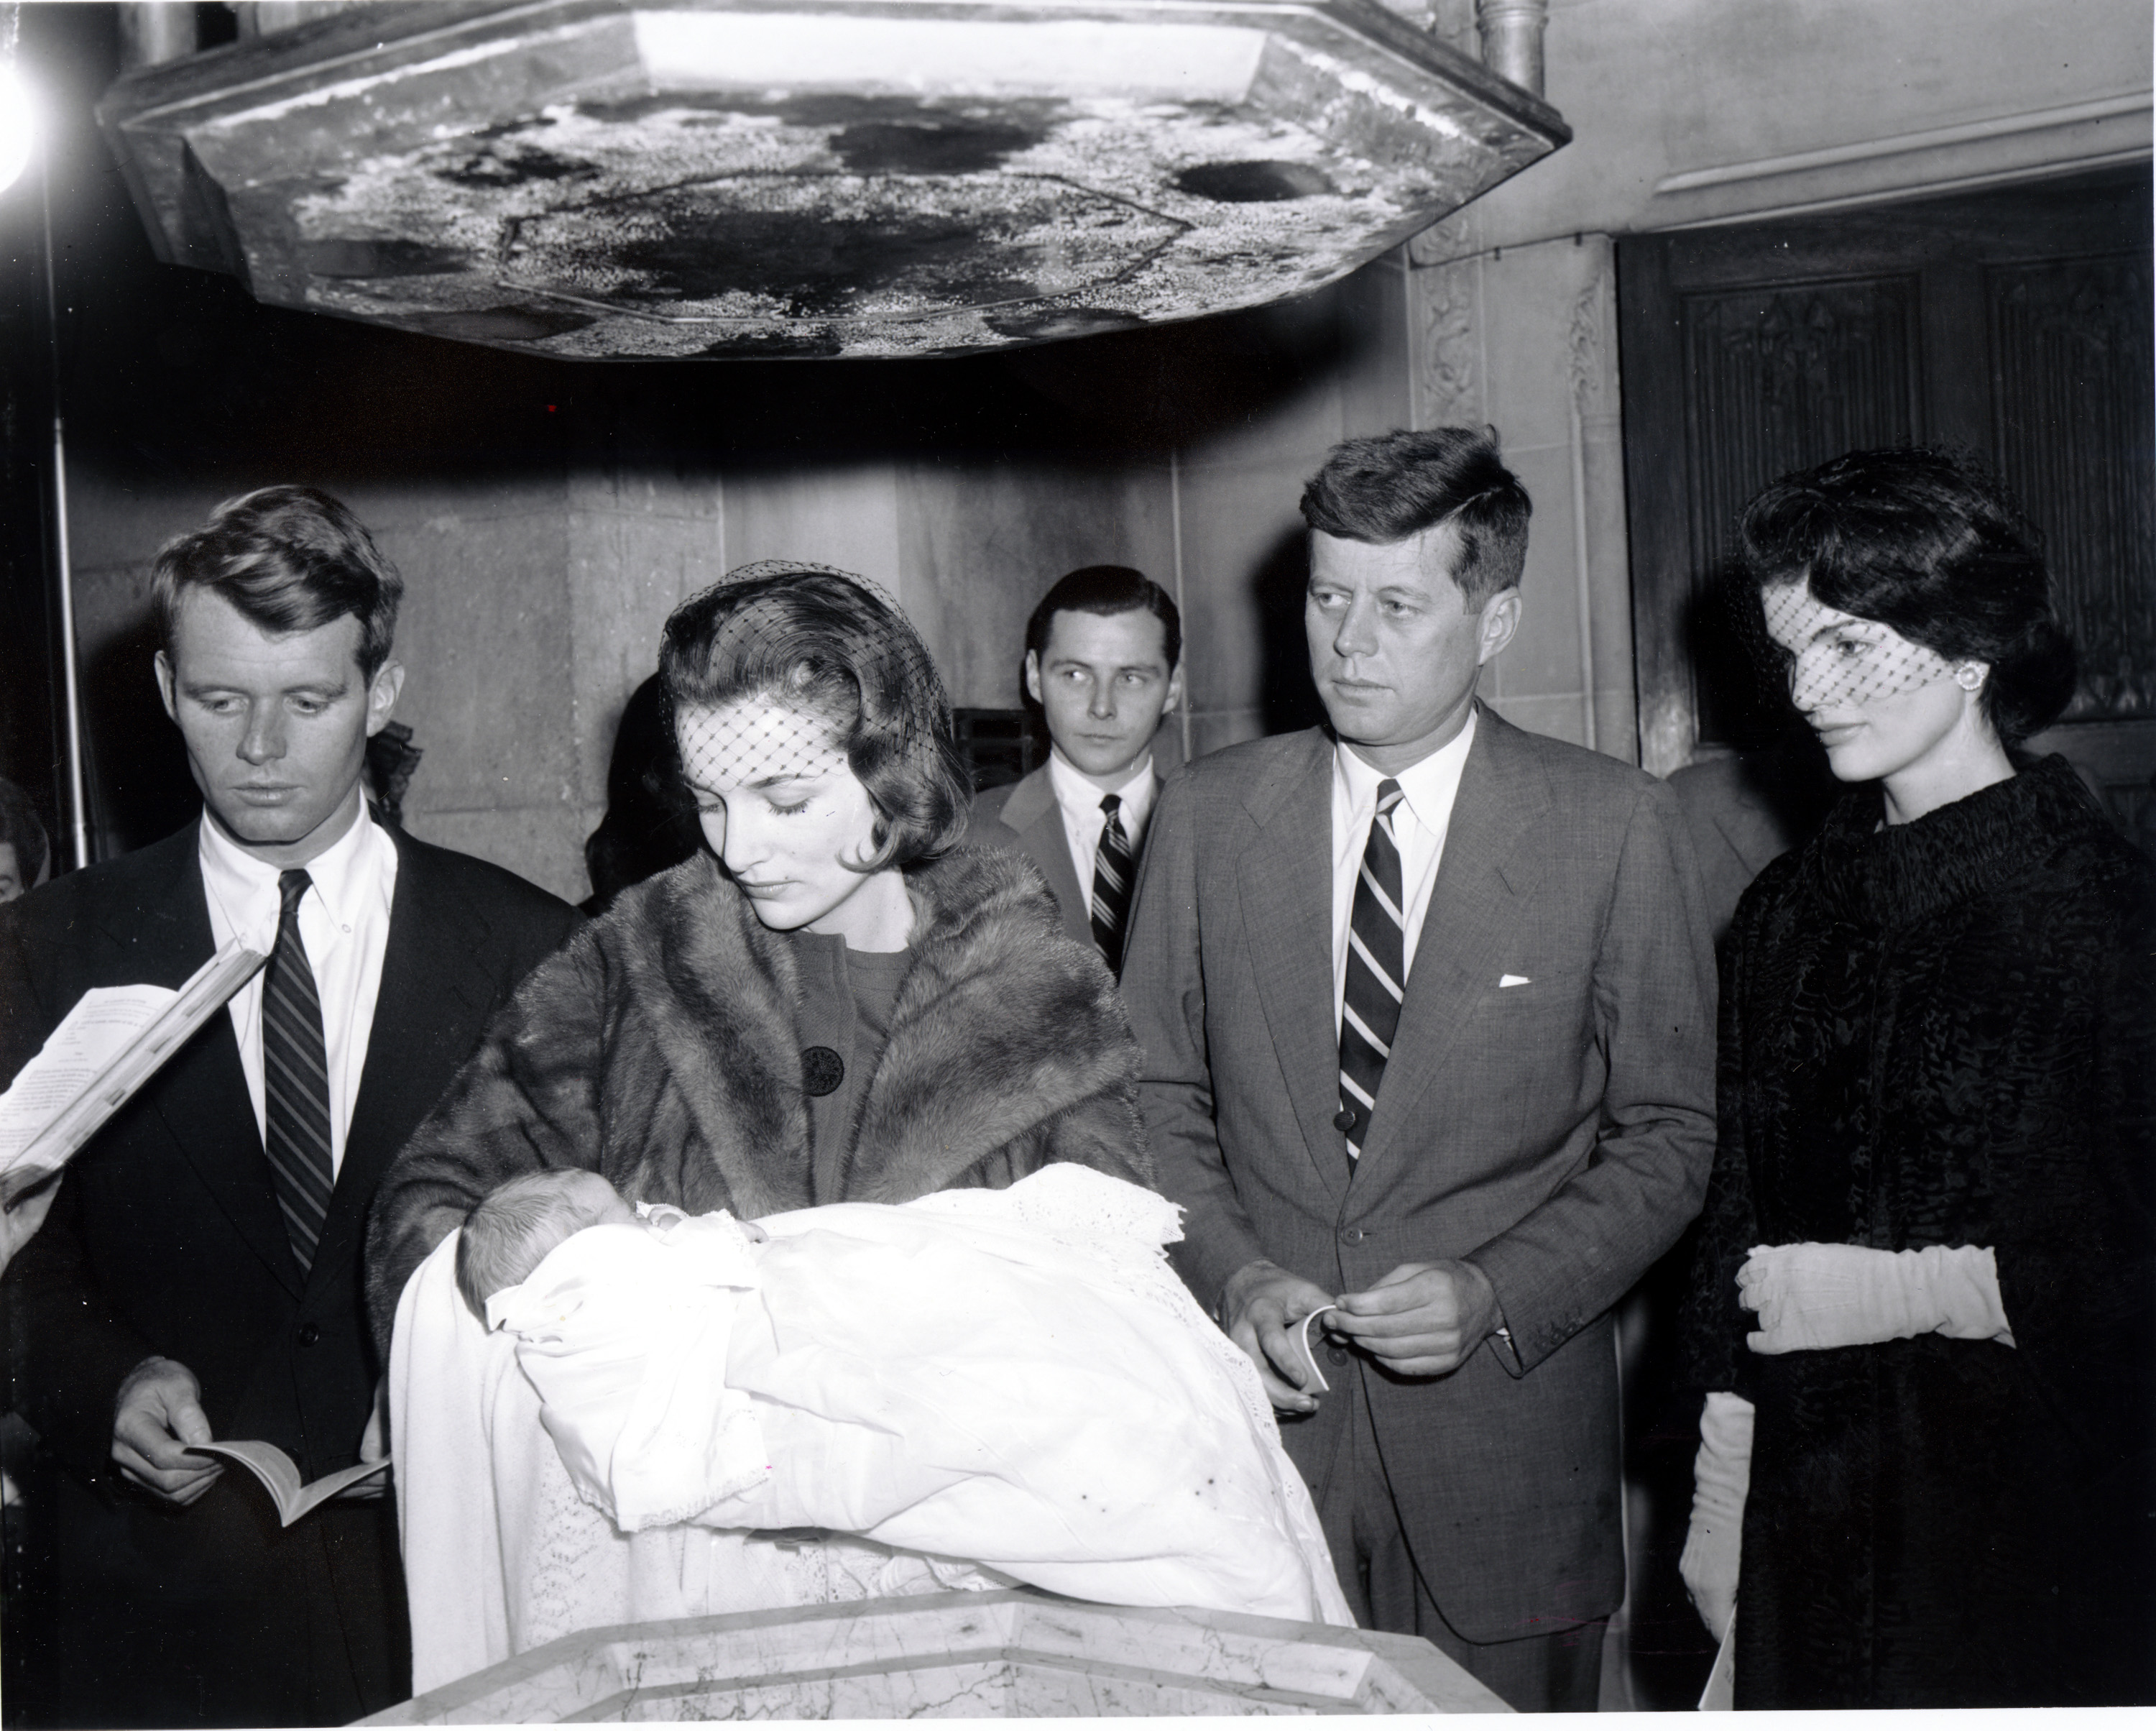 <div class='meta'><div class='origin-logo' data-origin='none'></div><span class='caption-text' data-credit='ASSOCIATED PRESS'>Sen. John Kennedy, D-Mass., and his wife, Jacqueline Kennedy, watch as her sister holds their 15-day-old daughter during her christening in New York City on Dec. 13, 1957.</span></div>